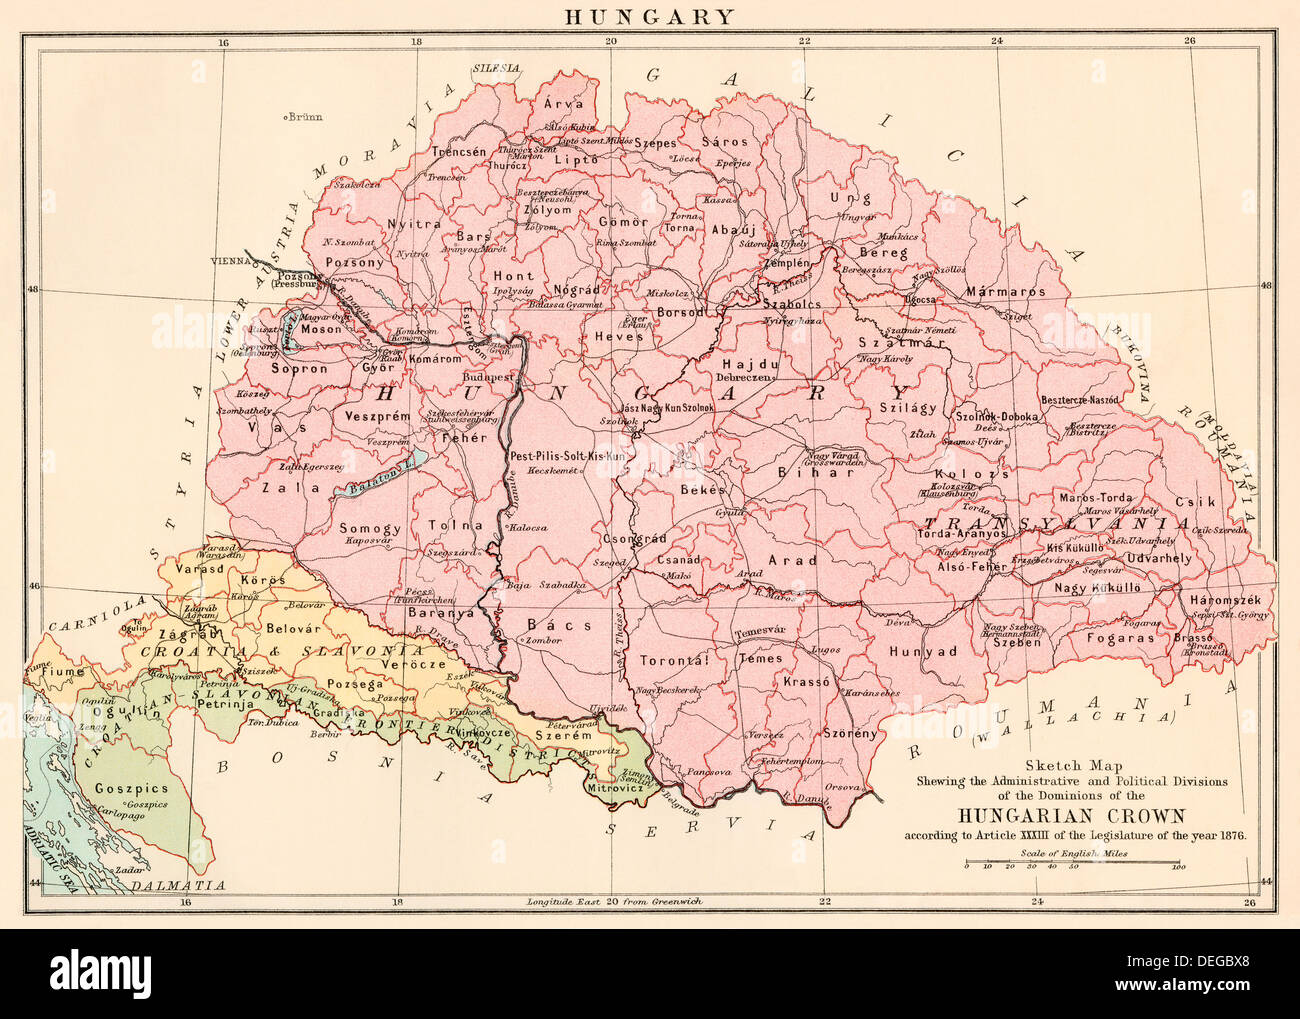 Map hungary stock photos map hungary stock images alamy map of hungary 1870s stock image gumiabroncs Images